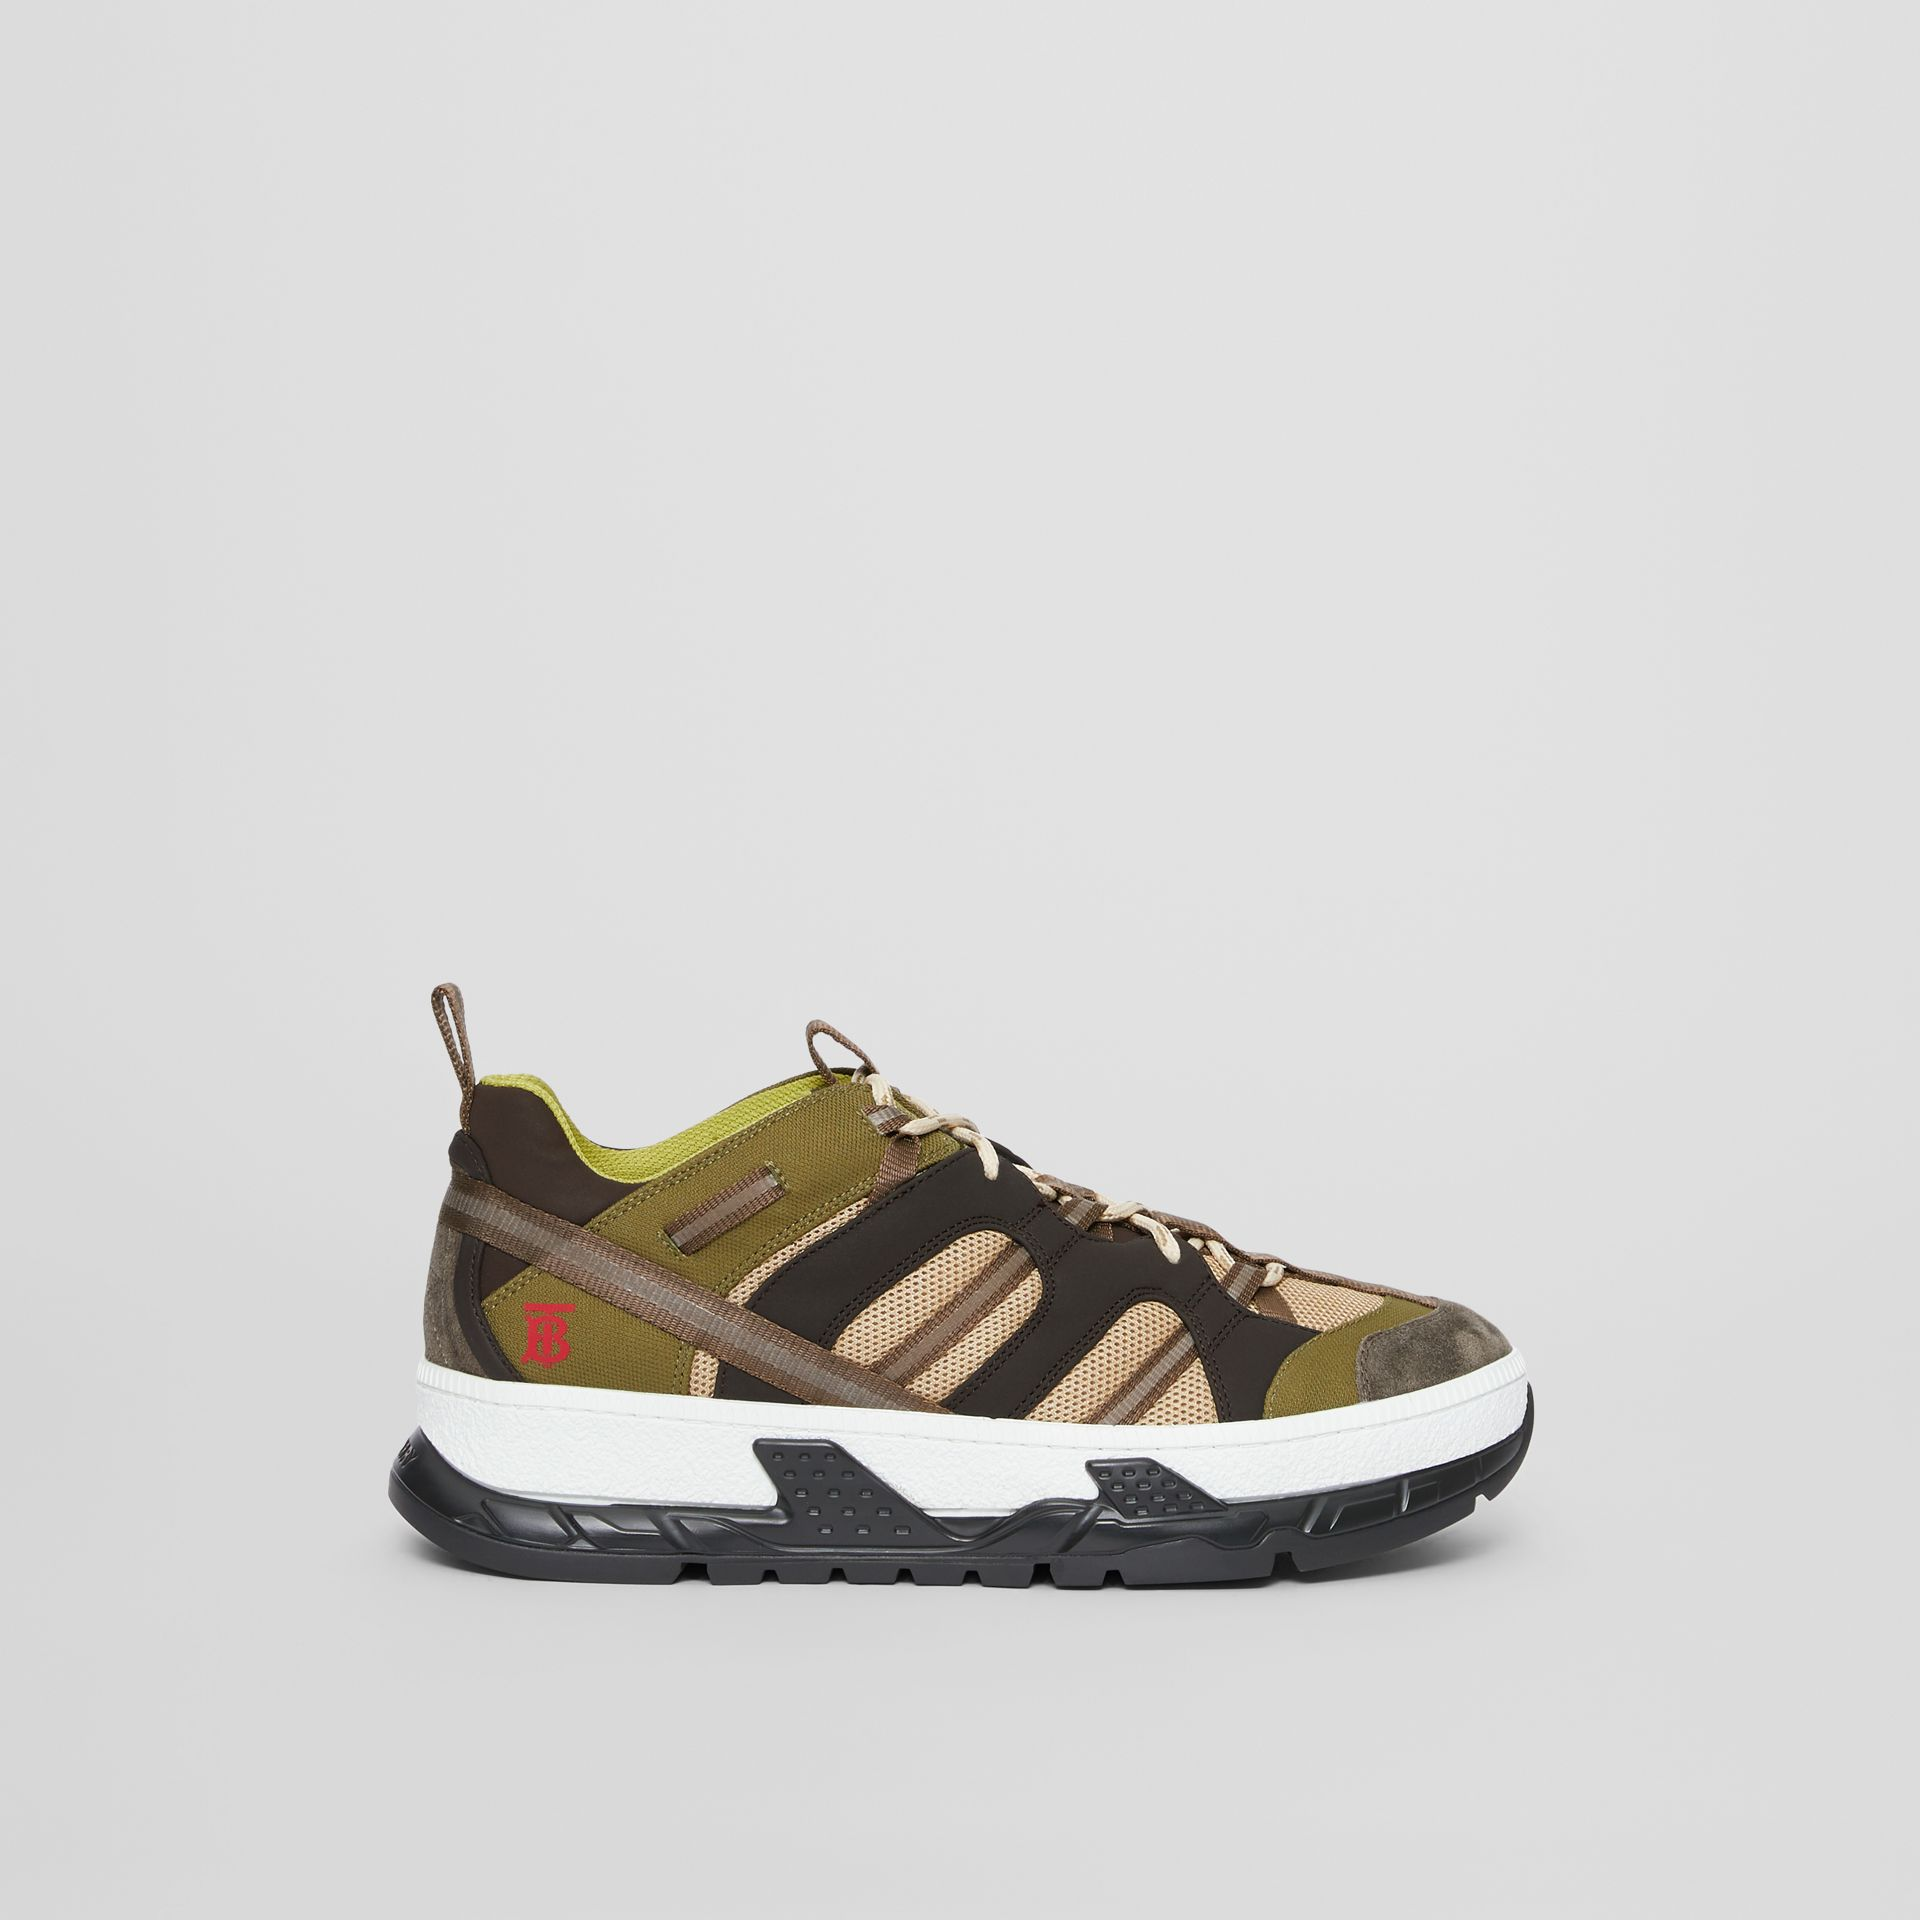 Mesh and Suede Union Sneakers in Khaki / Brown - Men | Burberry Canada - gallery image 4